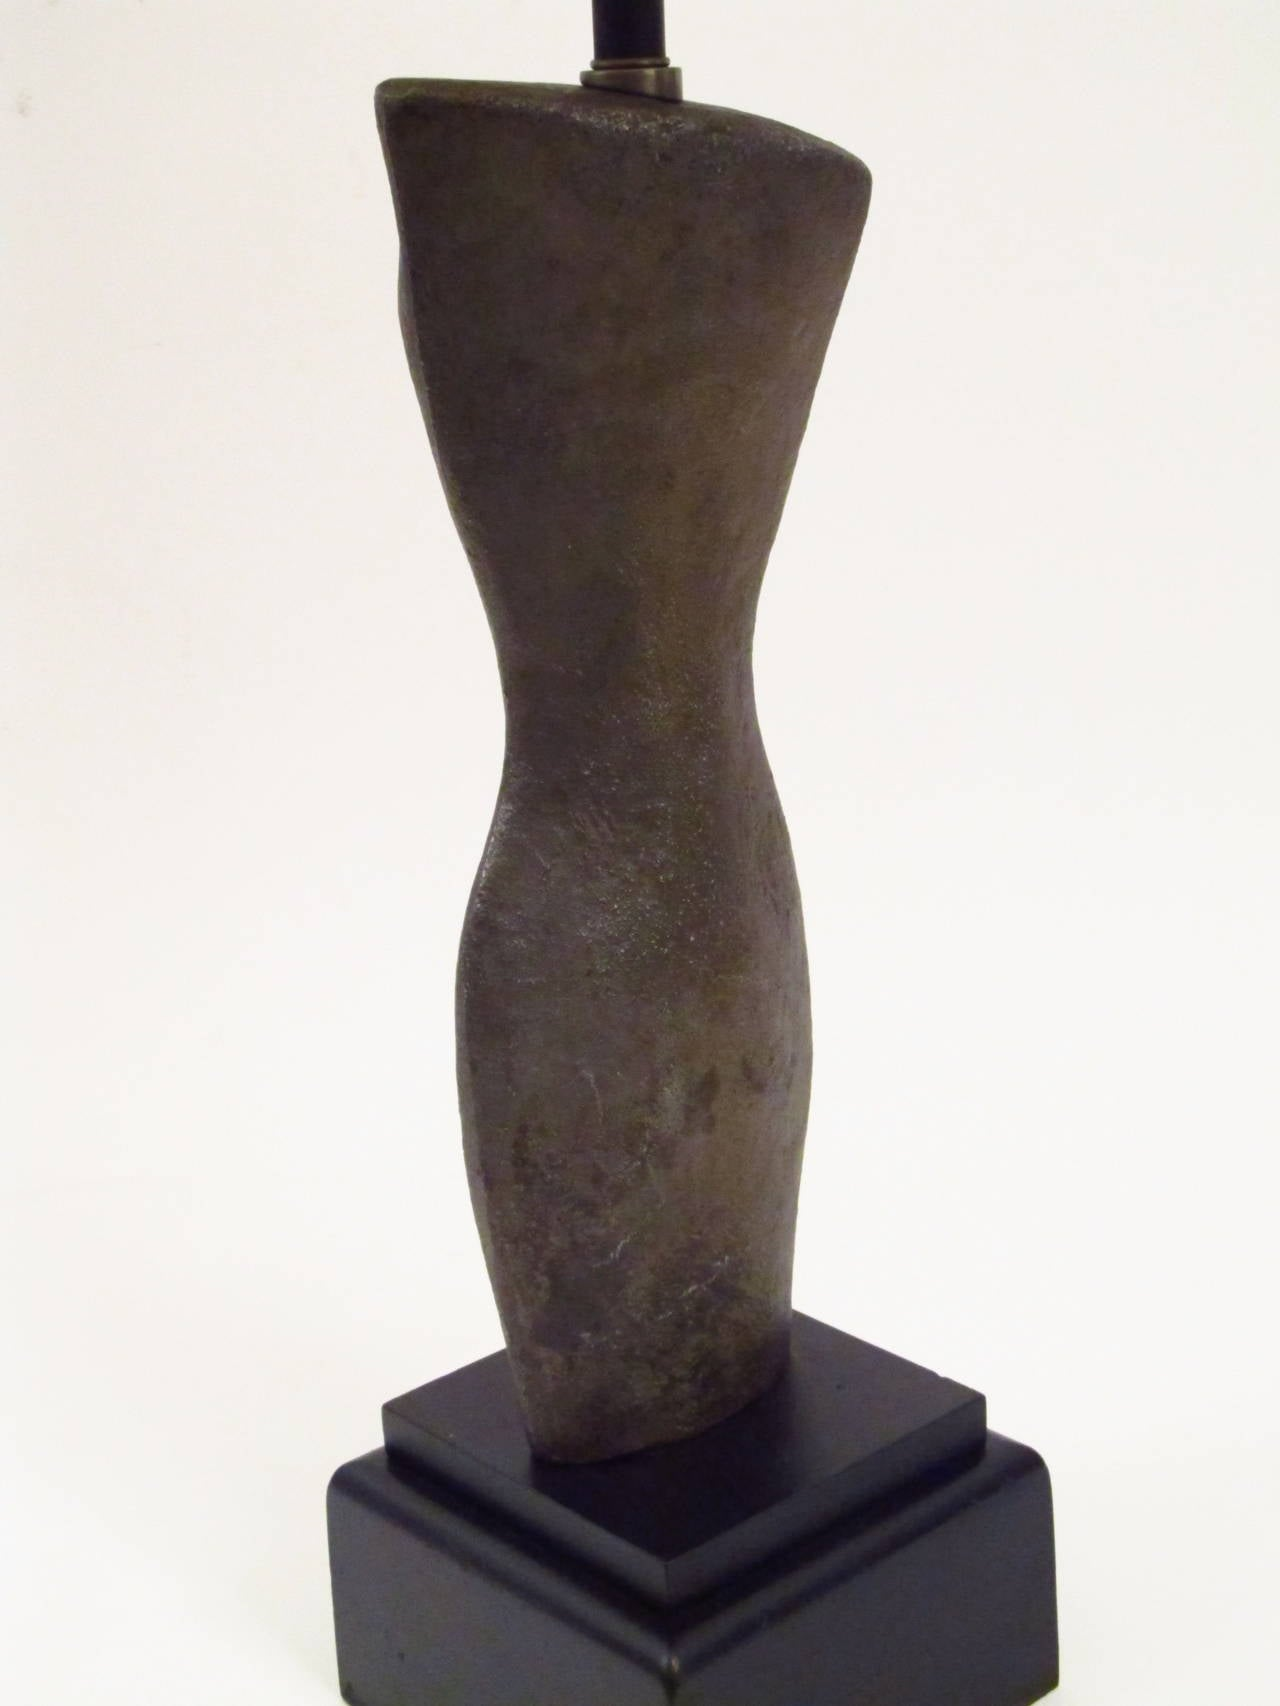 Female Torso Sculptural Table Lamp 5